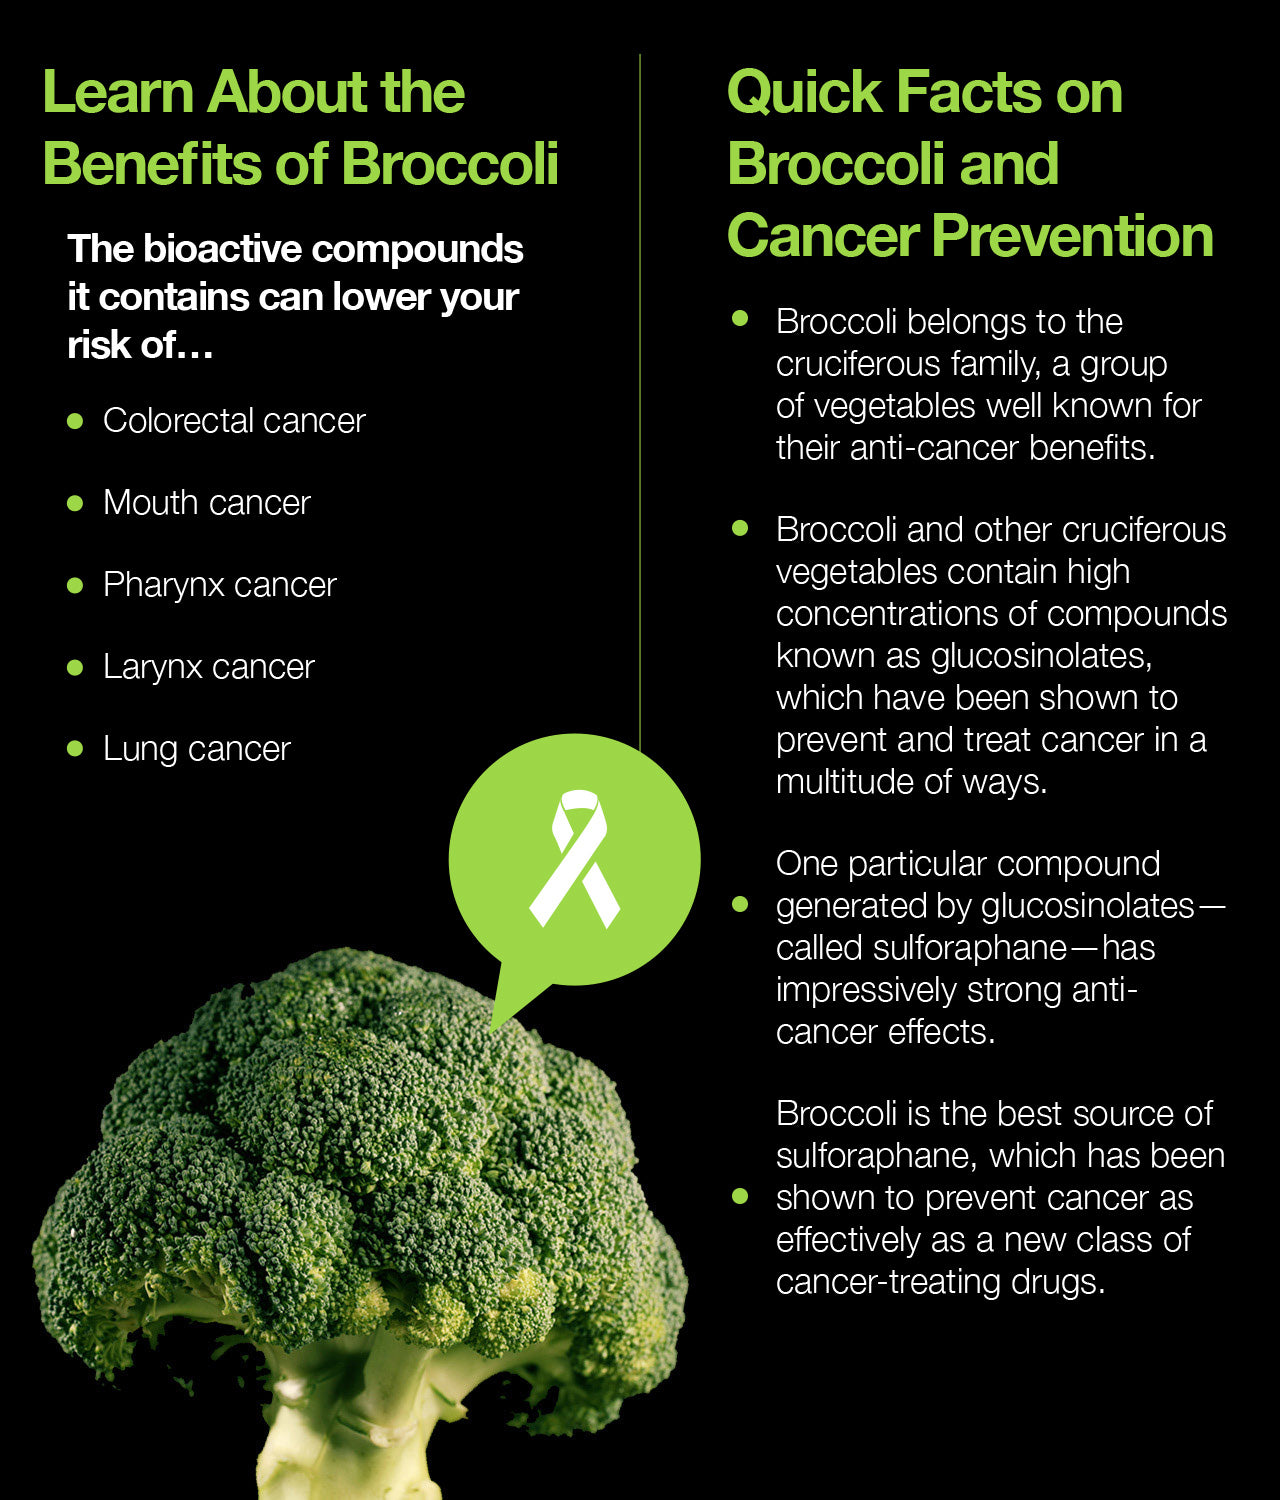 Learn About the Benefits of Broccoli